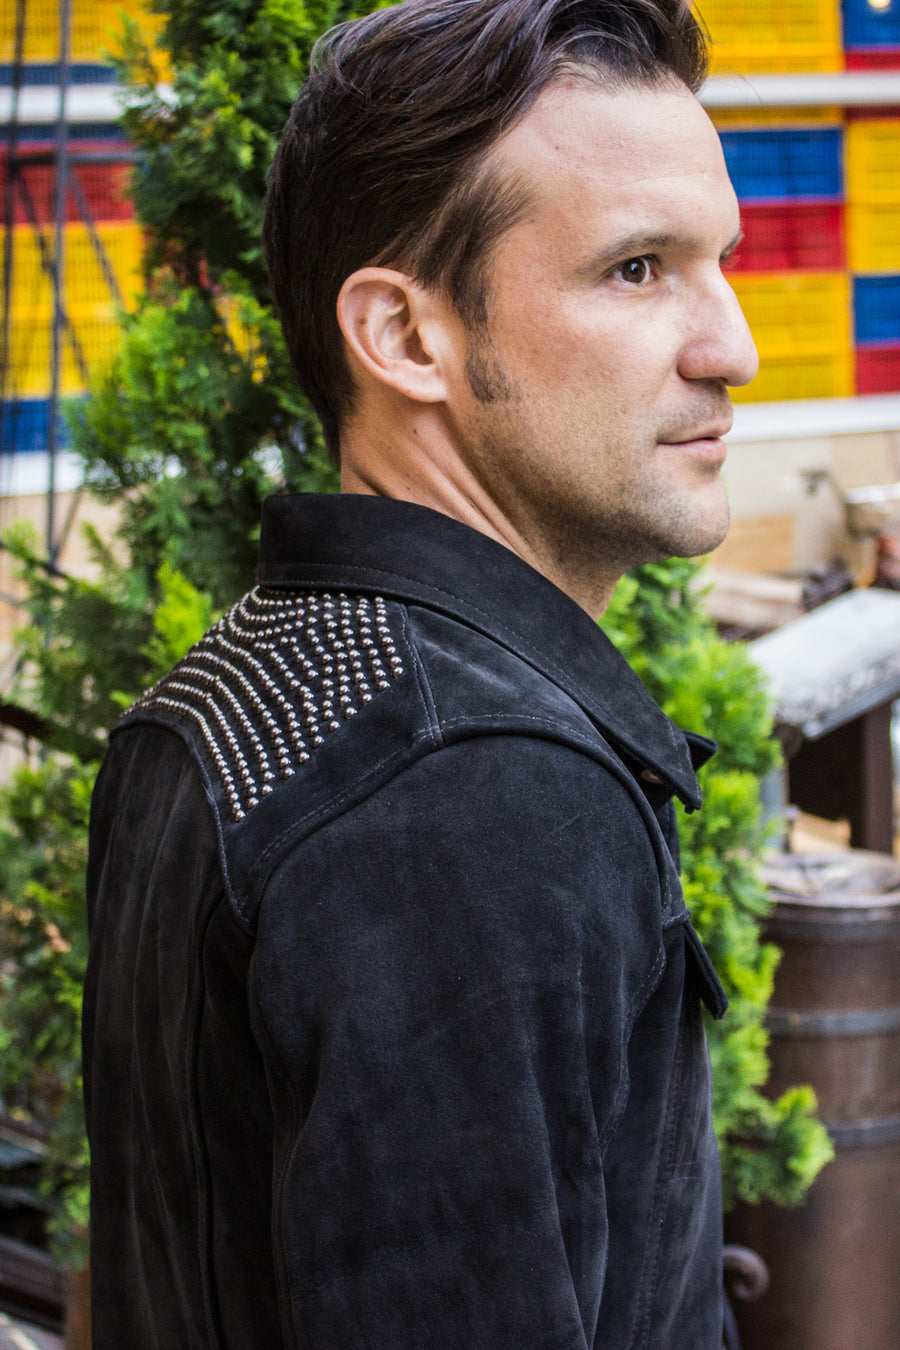 MCDAVE Denim Style Jacket in Nubuck & Studs - Black - PDCollection Leatherwear - Online Shop